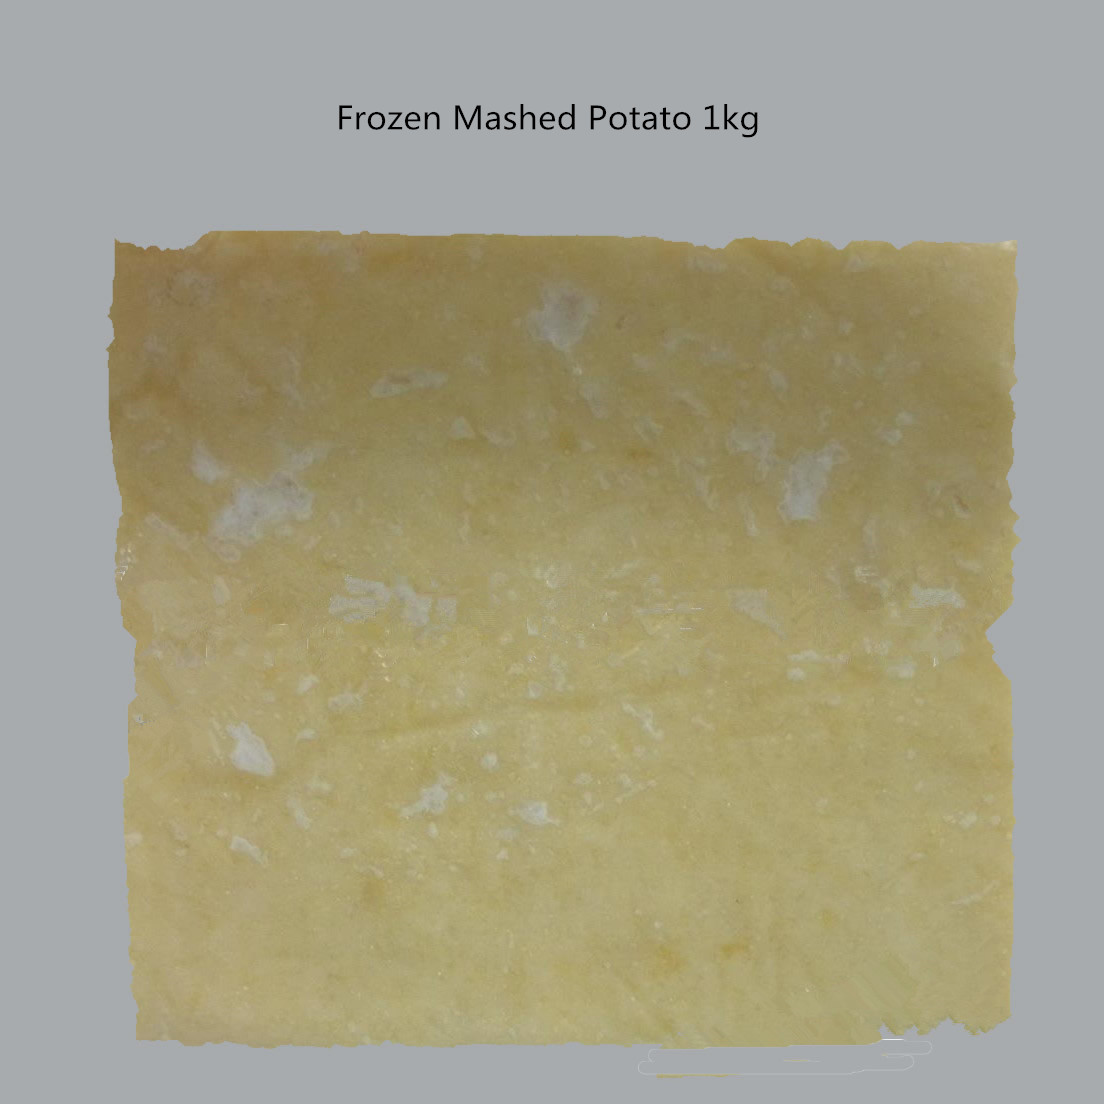 frozen mashed potato block